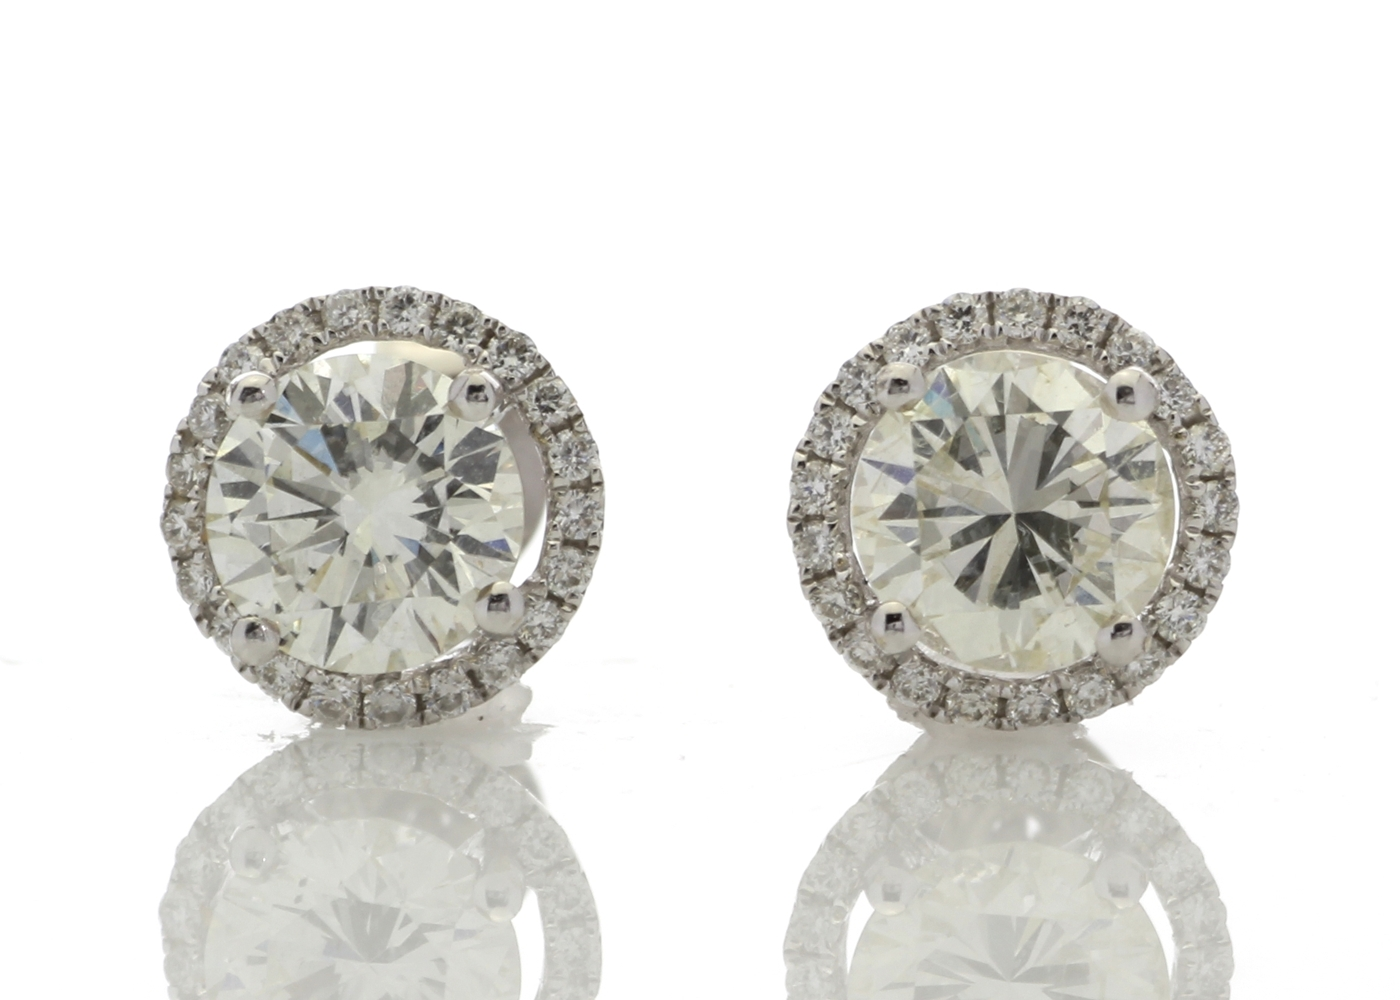 Lot 32 - 18ct White Gold Halo Set Earrings 2.26 Carats